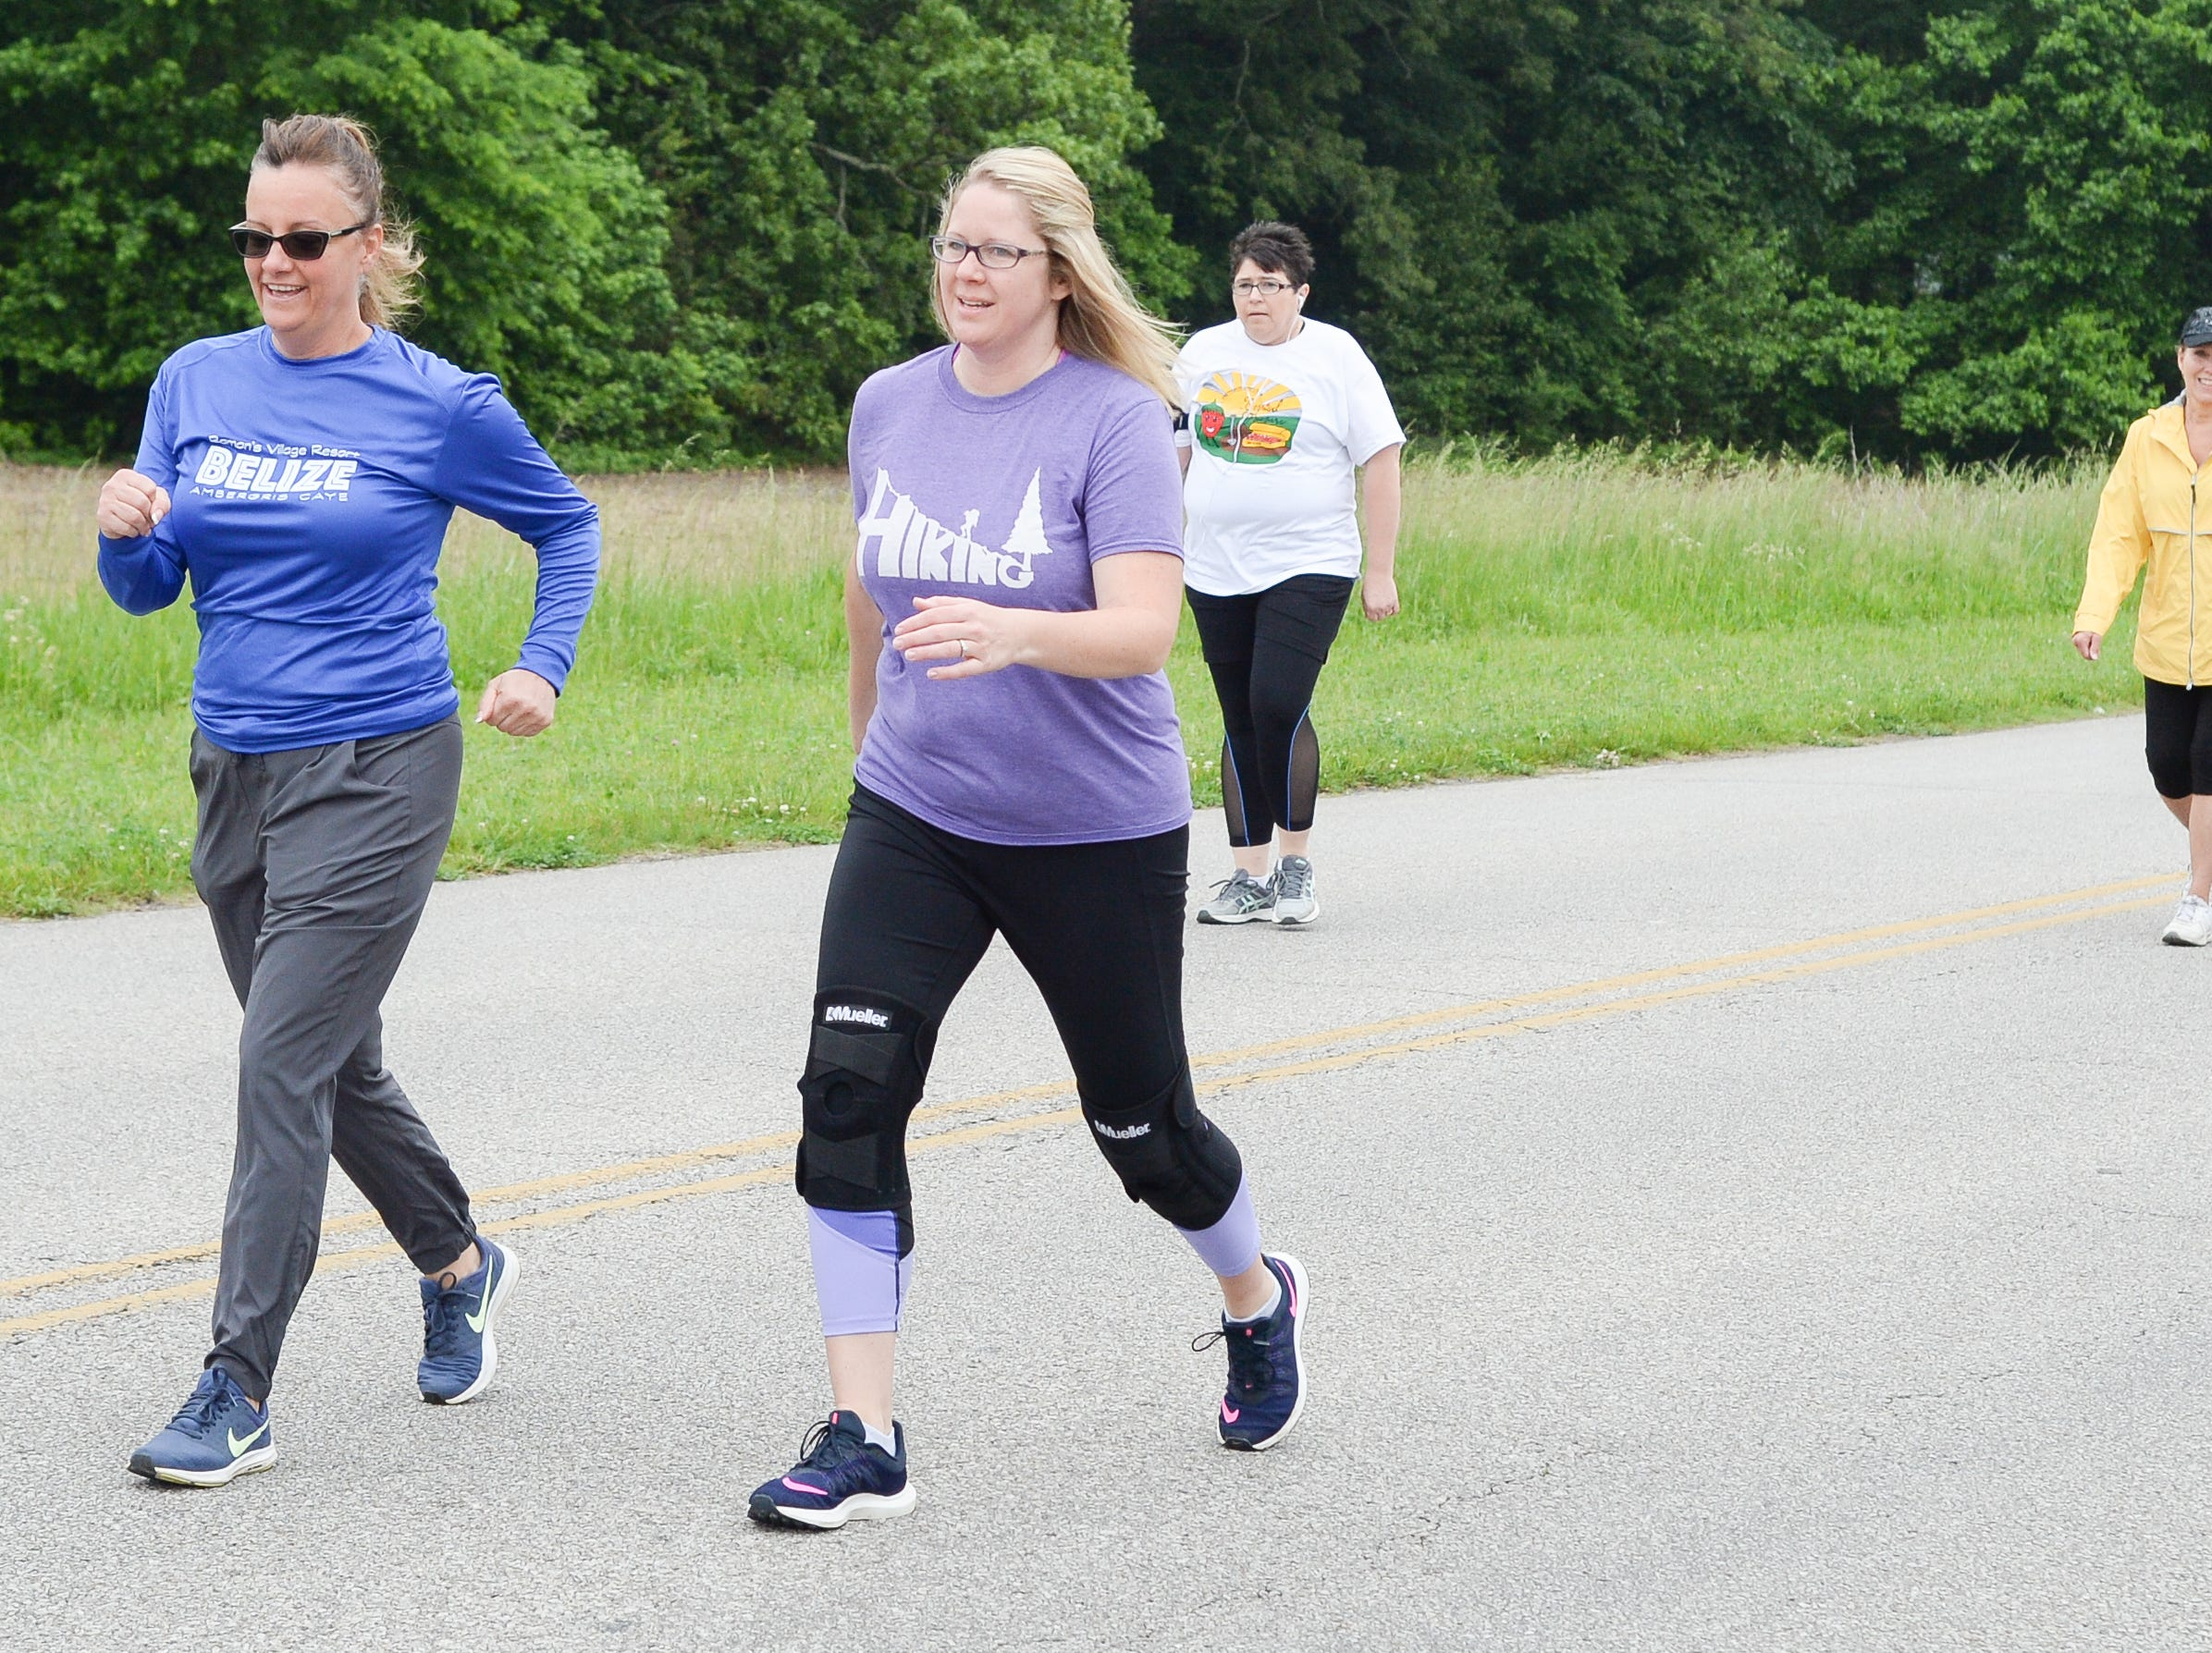 Melissa Raines and Rachel Wooten participate in the Strawberry Stride at Portland High School during the 78th Annual Middle Tennessee Strawberry Festival presented by the Portland Chamber of Commerce in Portland on Saturday, May 11.